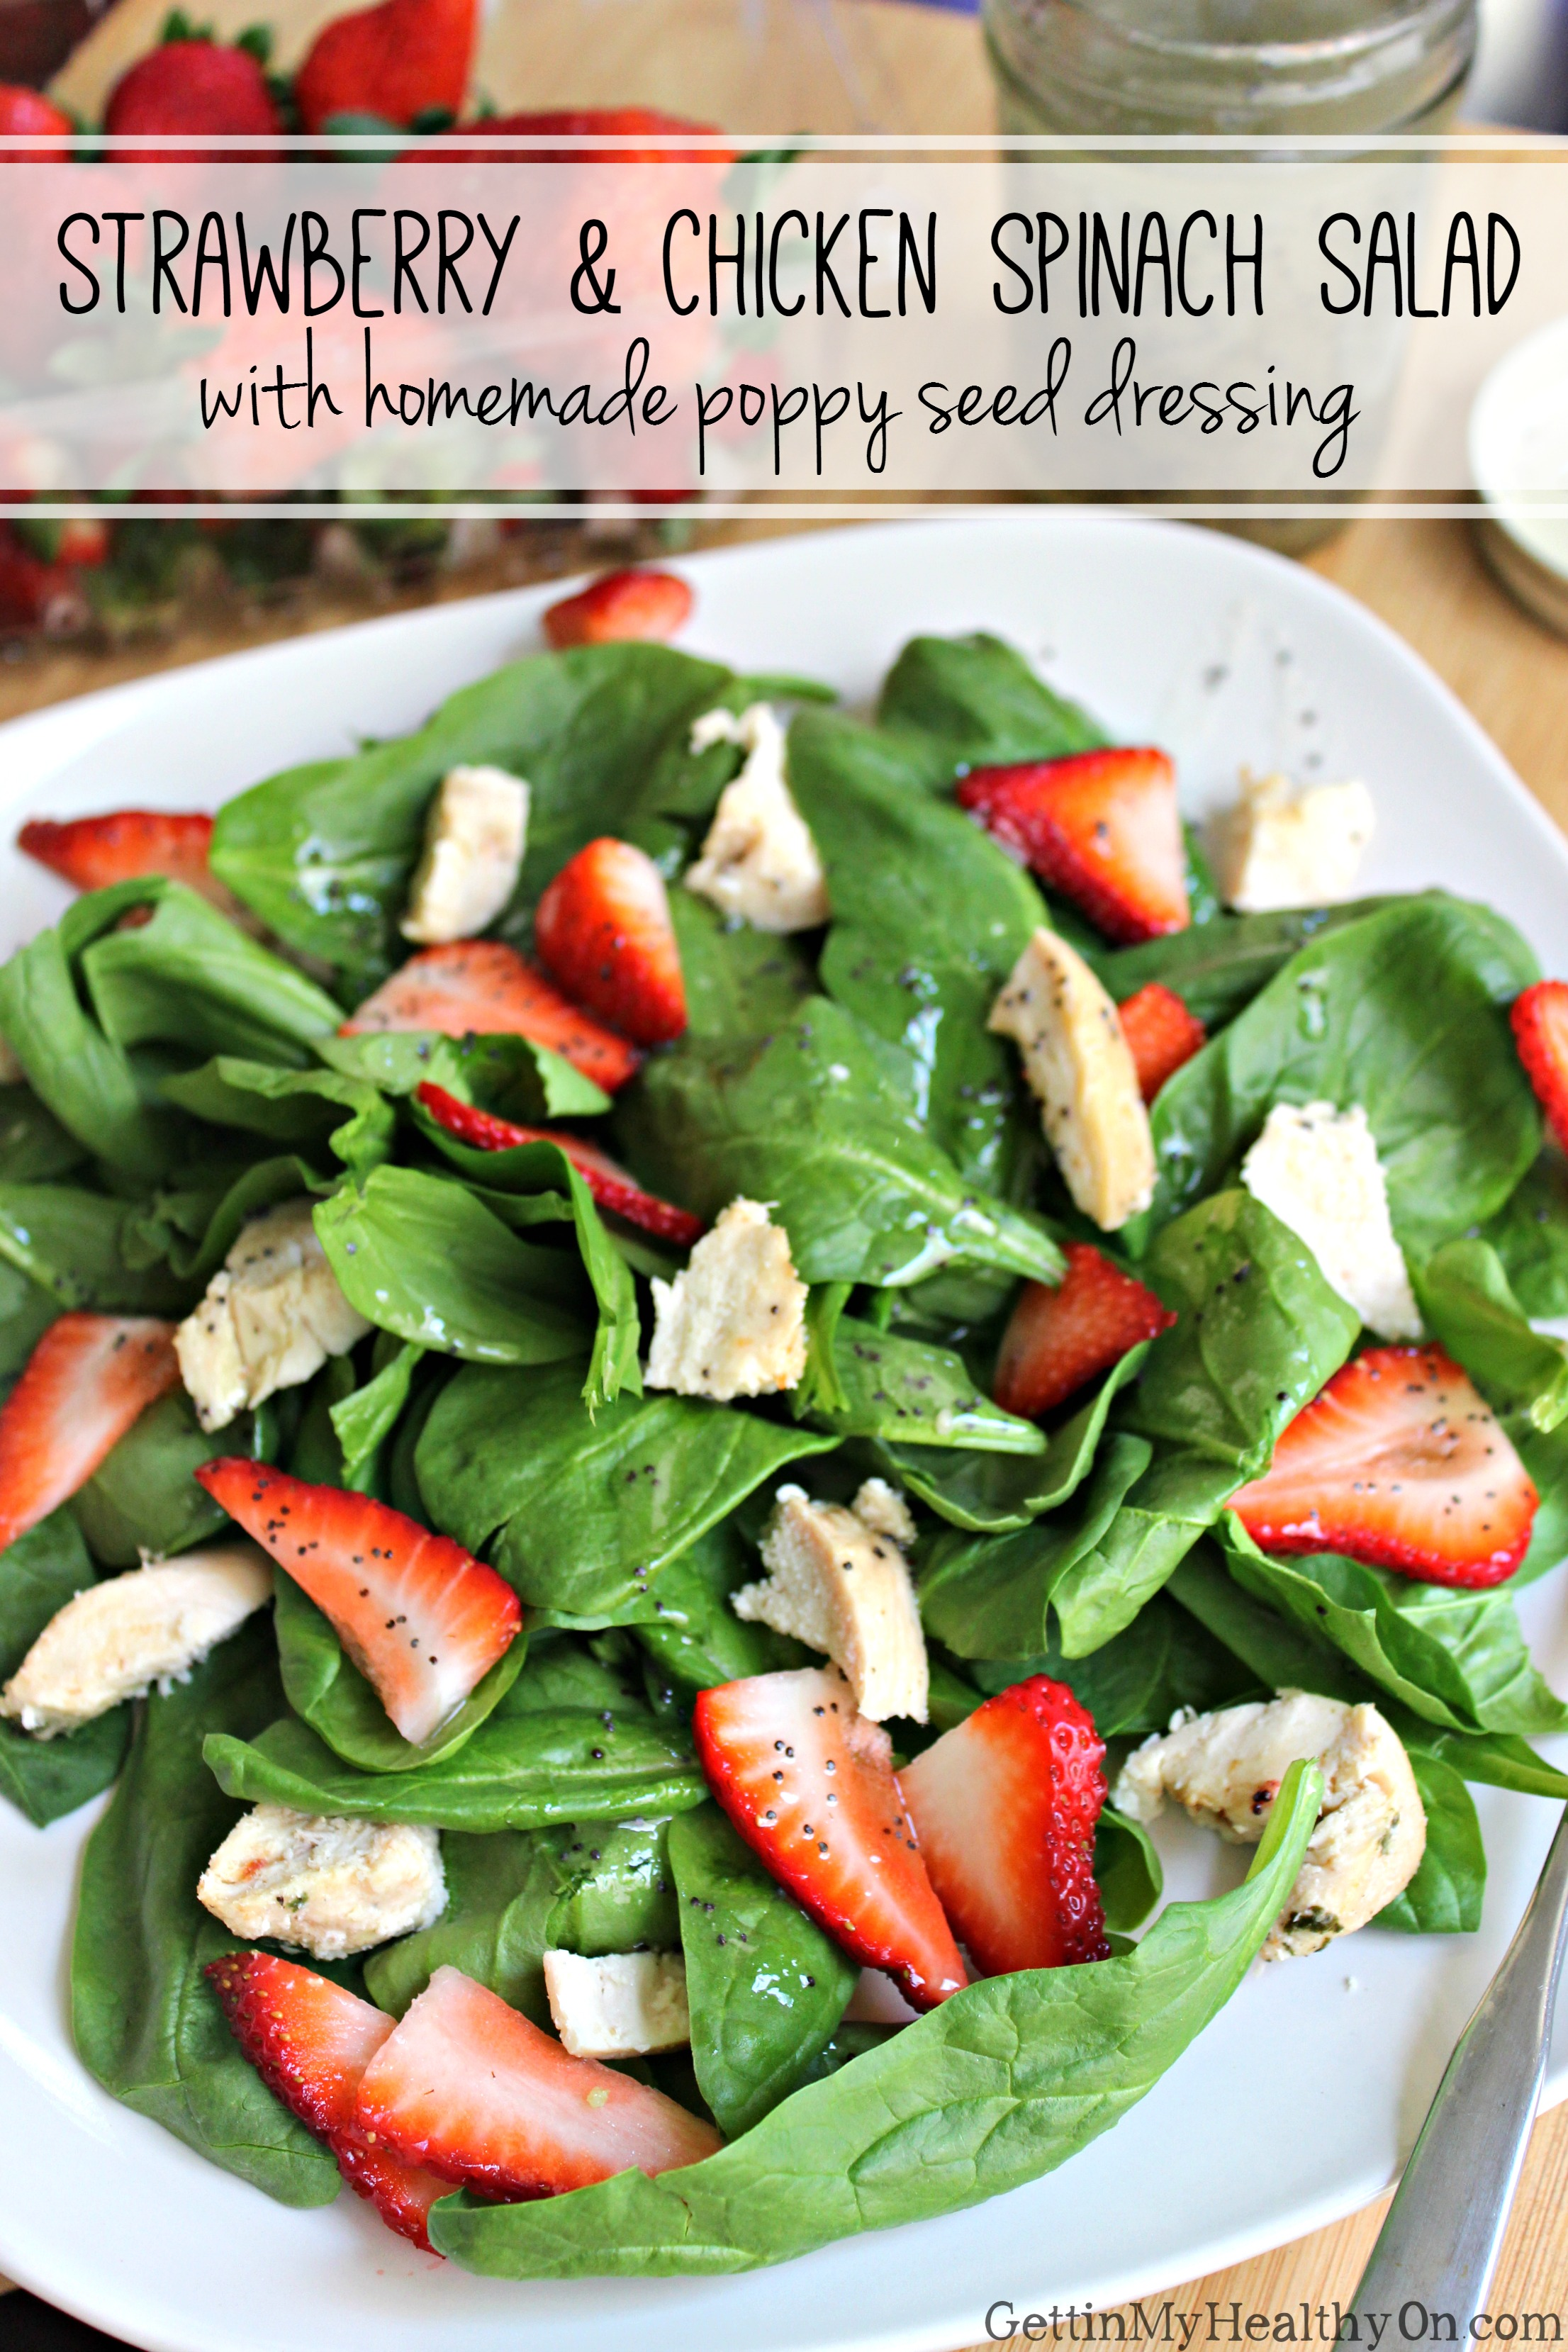 Strawberry & Chicken Spinach Salad with Poppy Seed Dressing